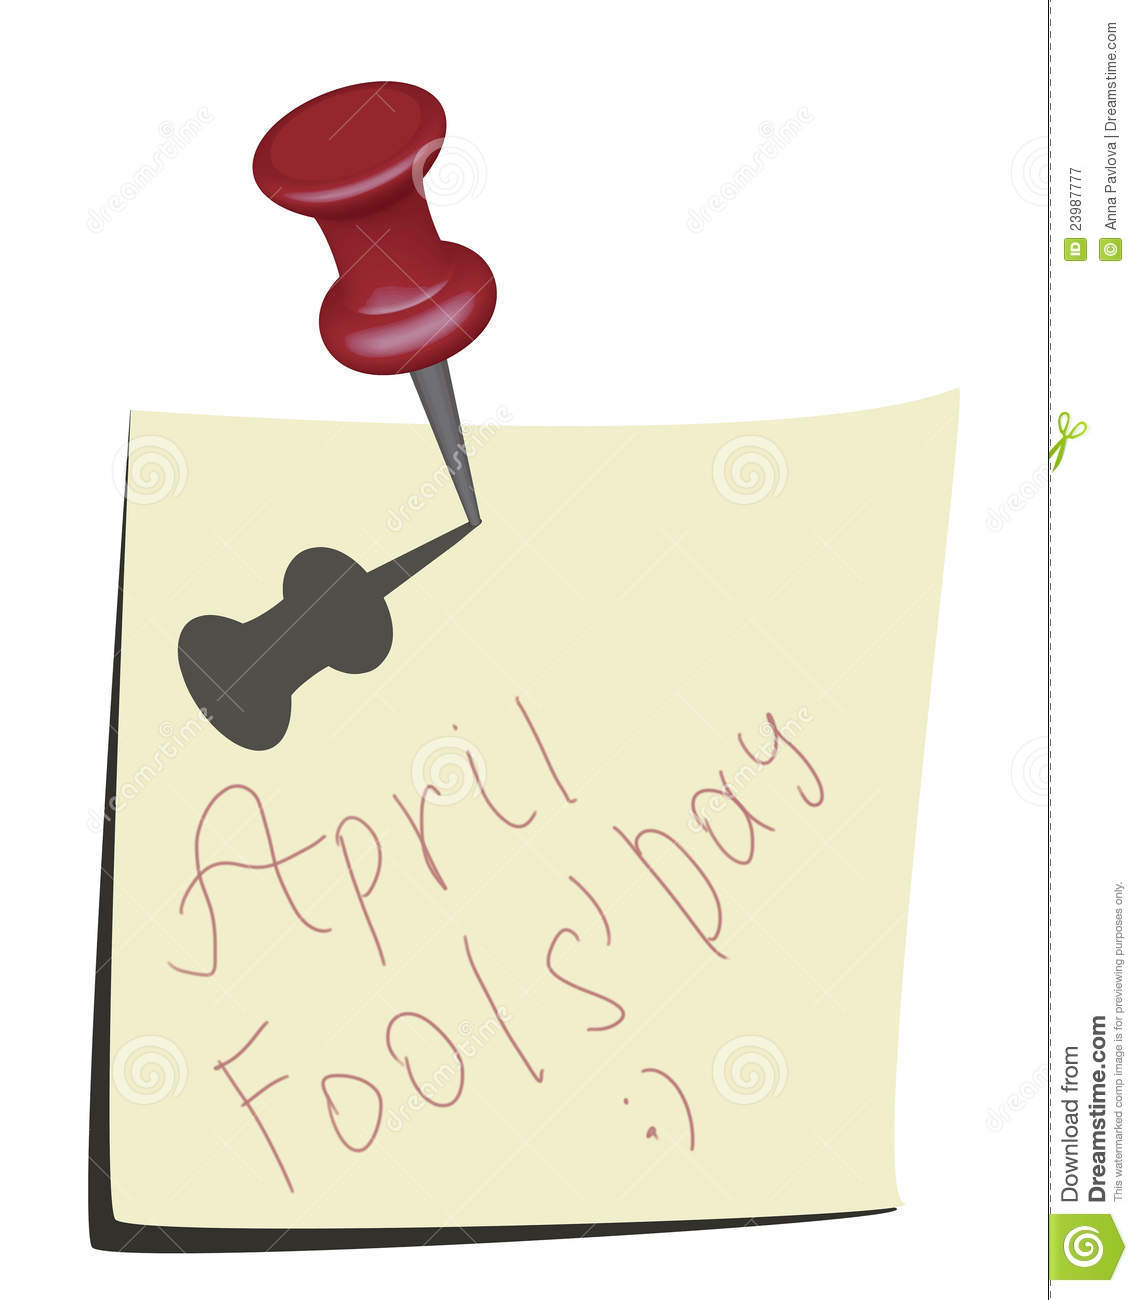 Calendar April Fools : April fools day calendar icon stock illustration image